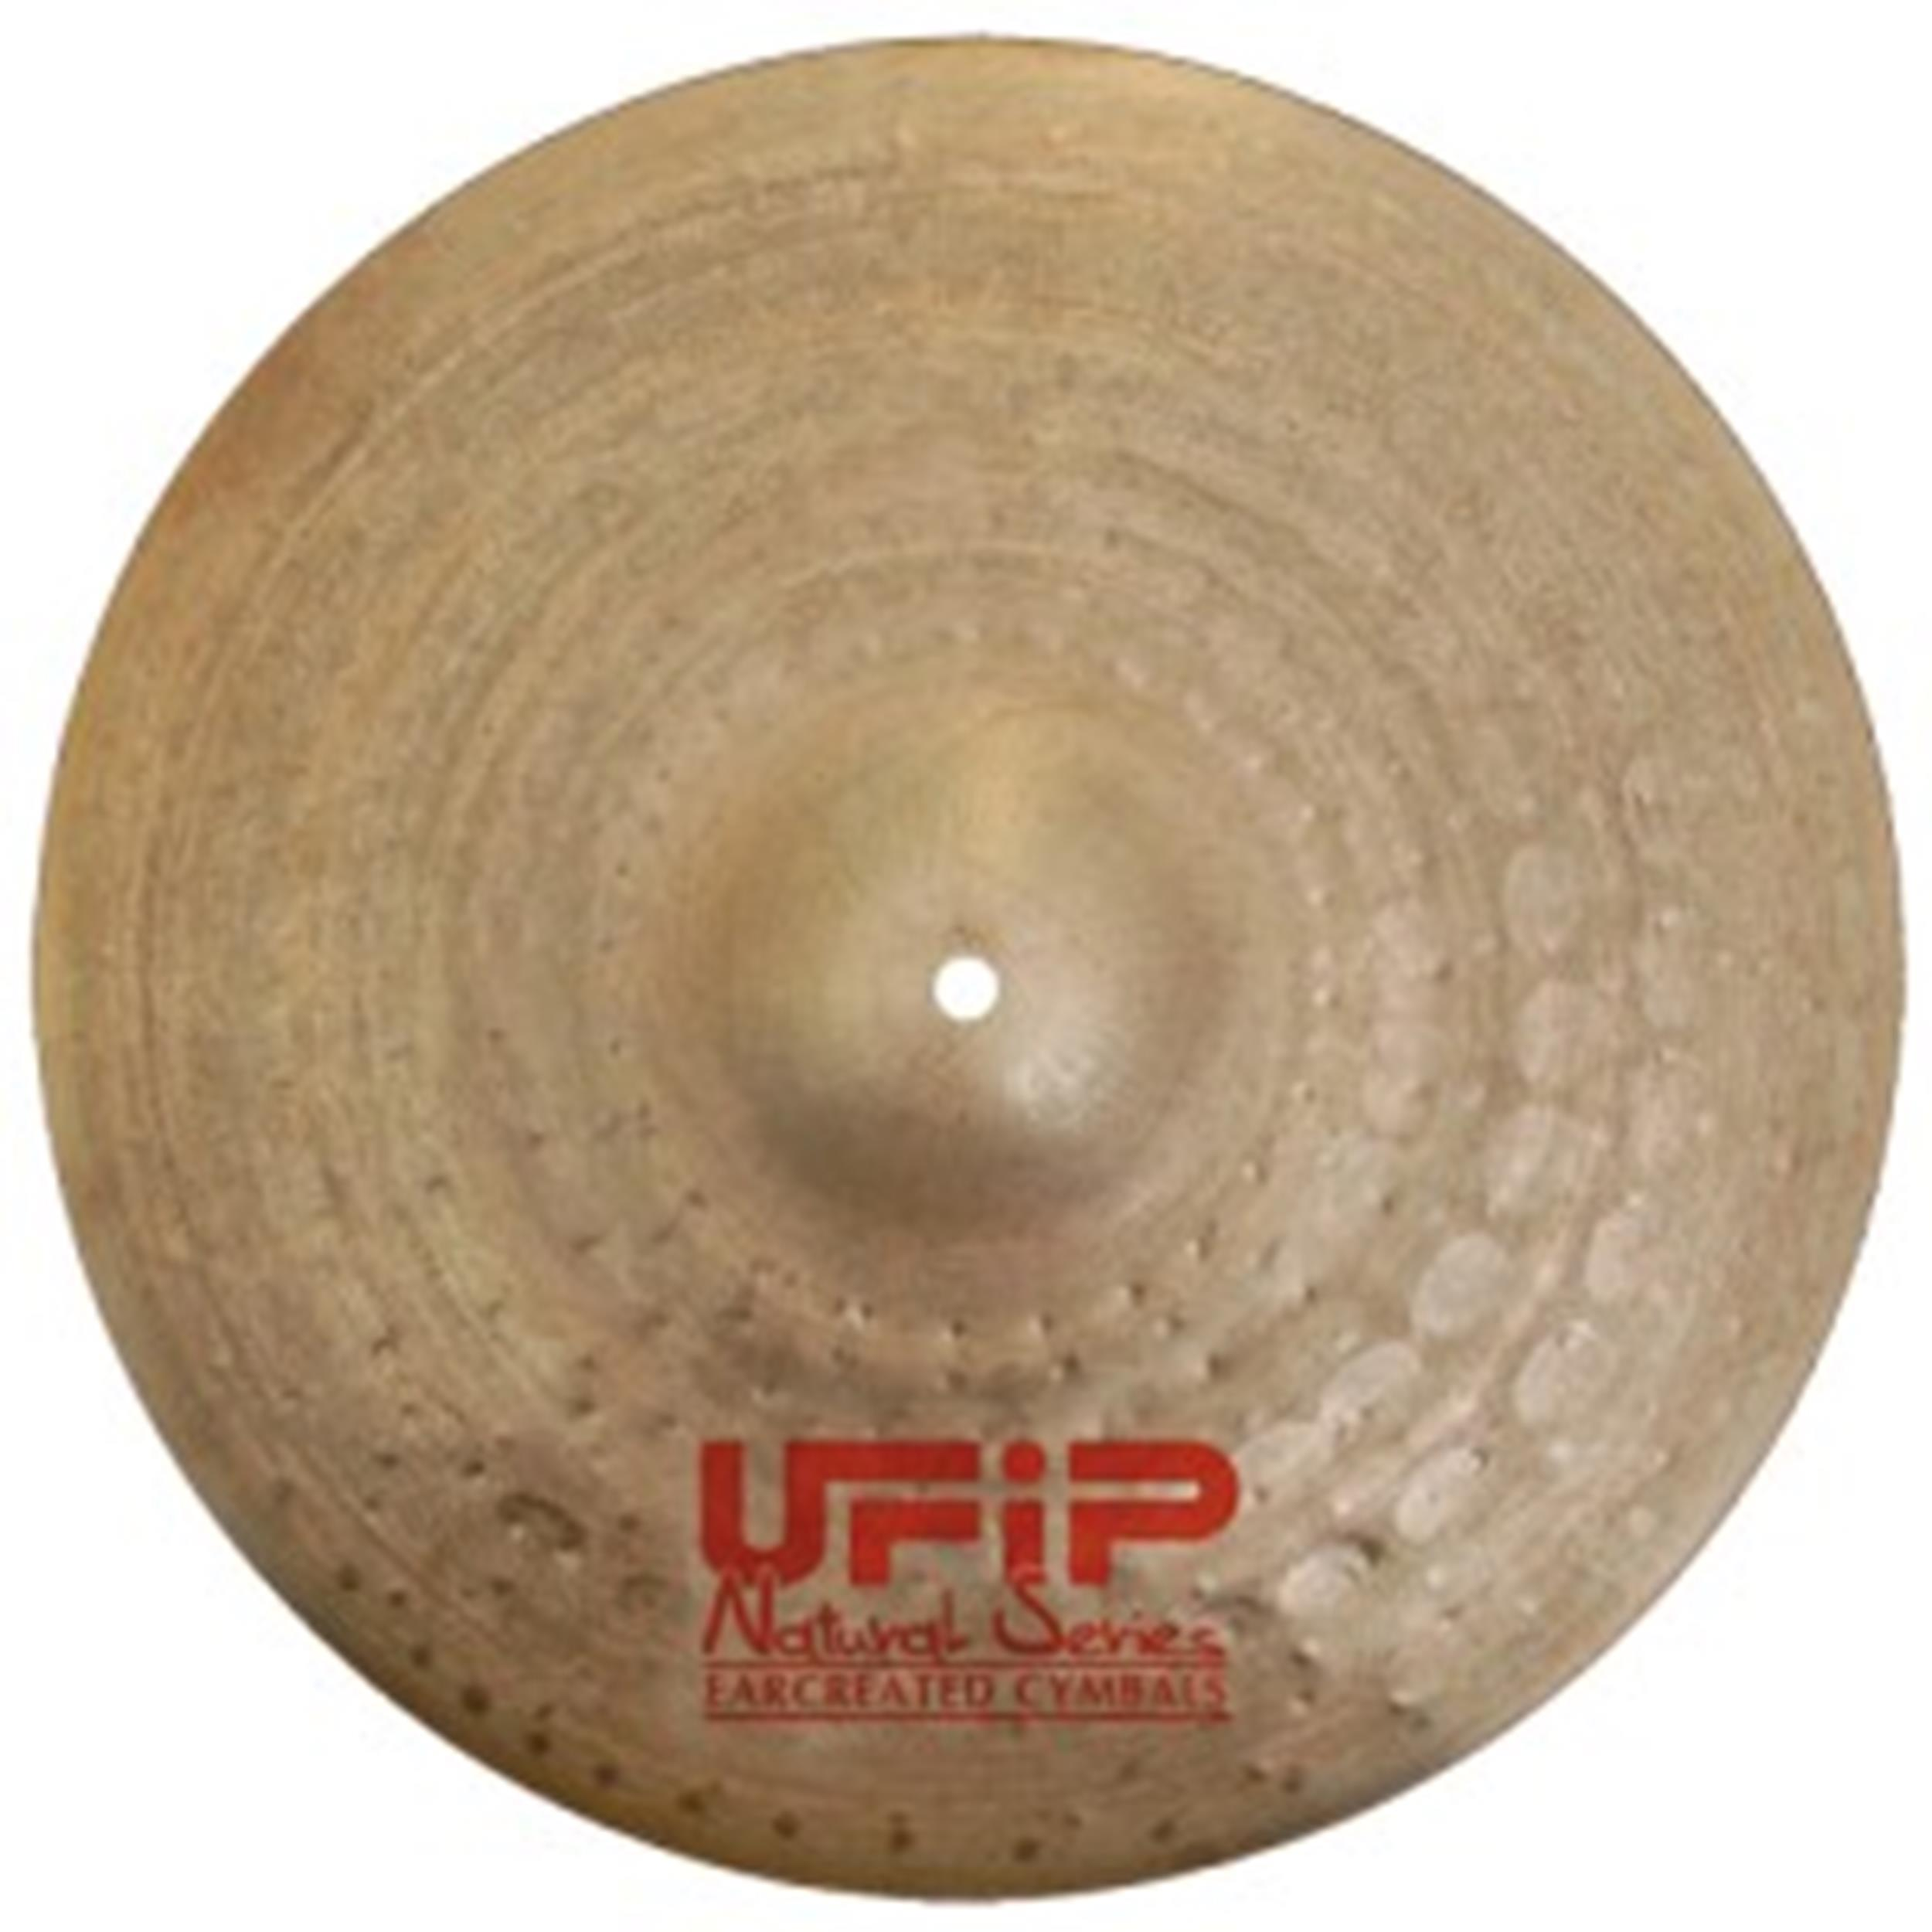 UFIP NS-21MR - Natural Series 21